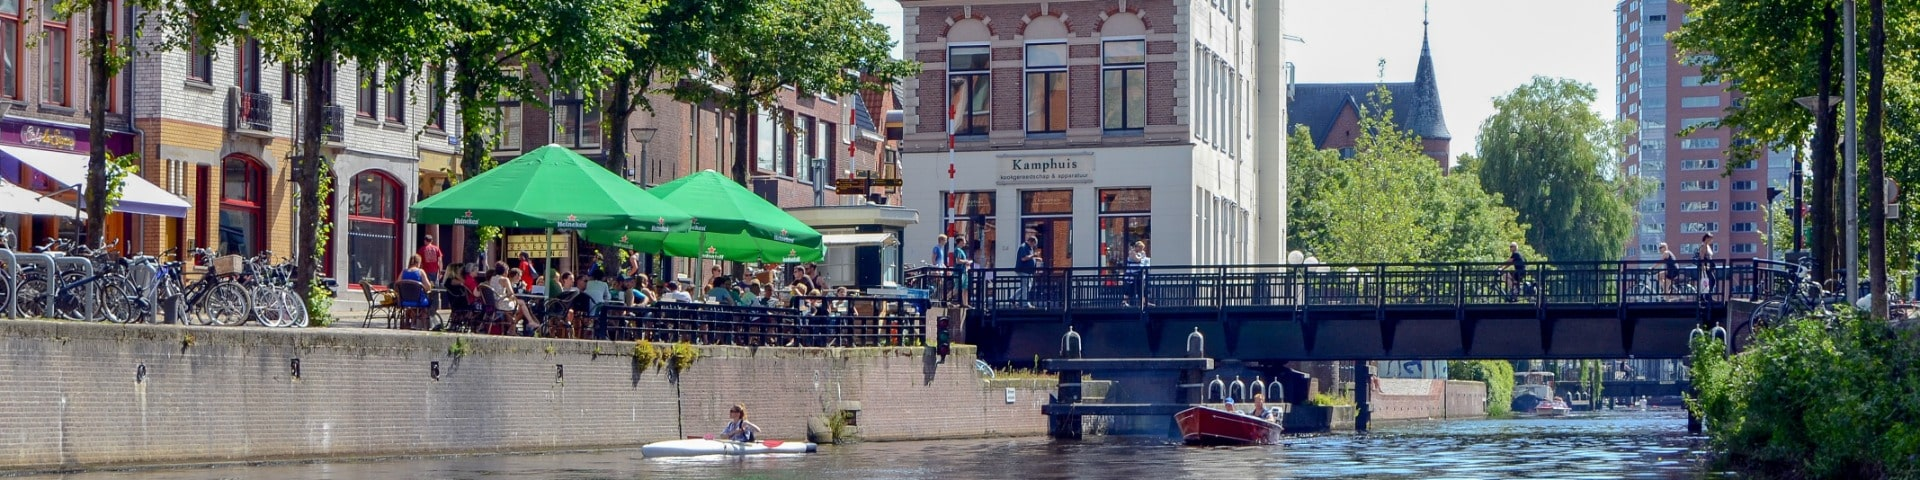 Kamphuis along the canal in Groningen